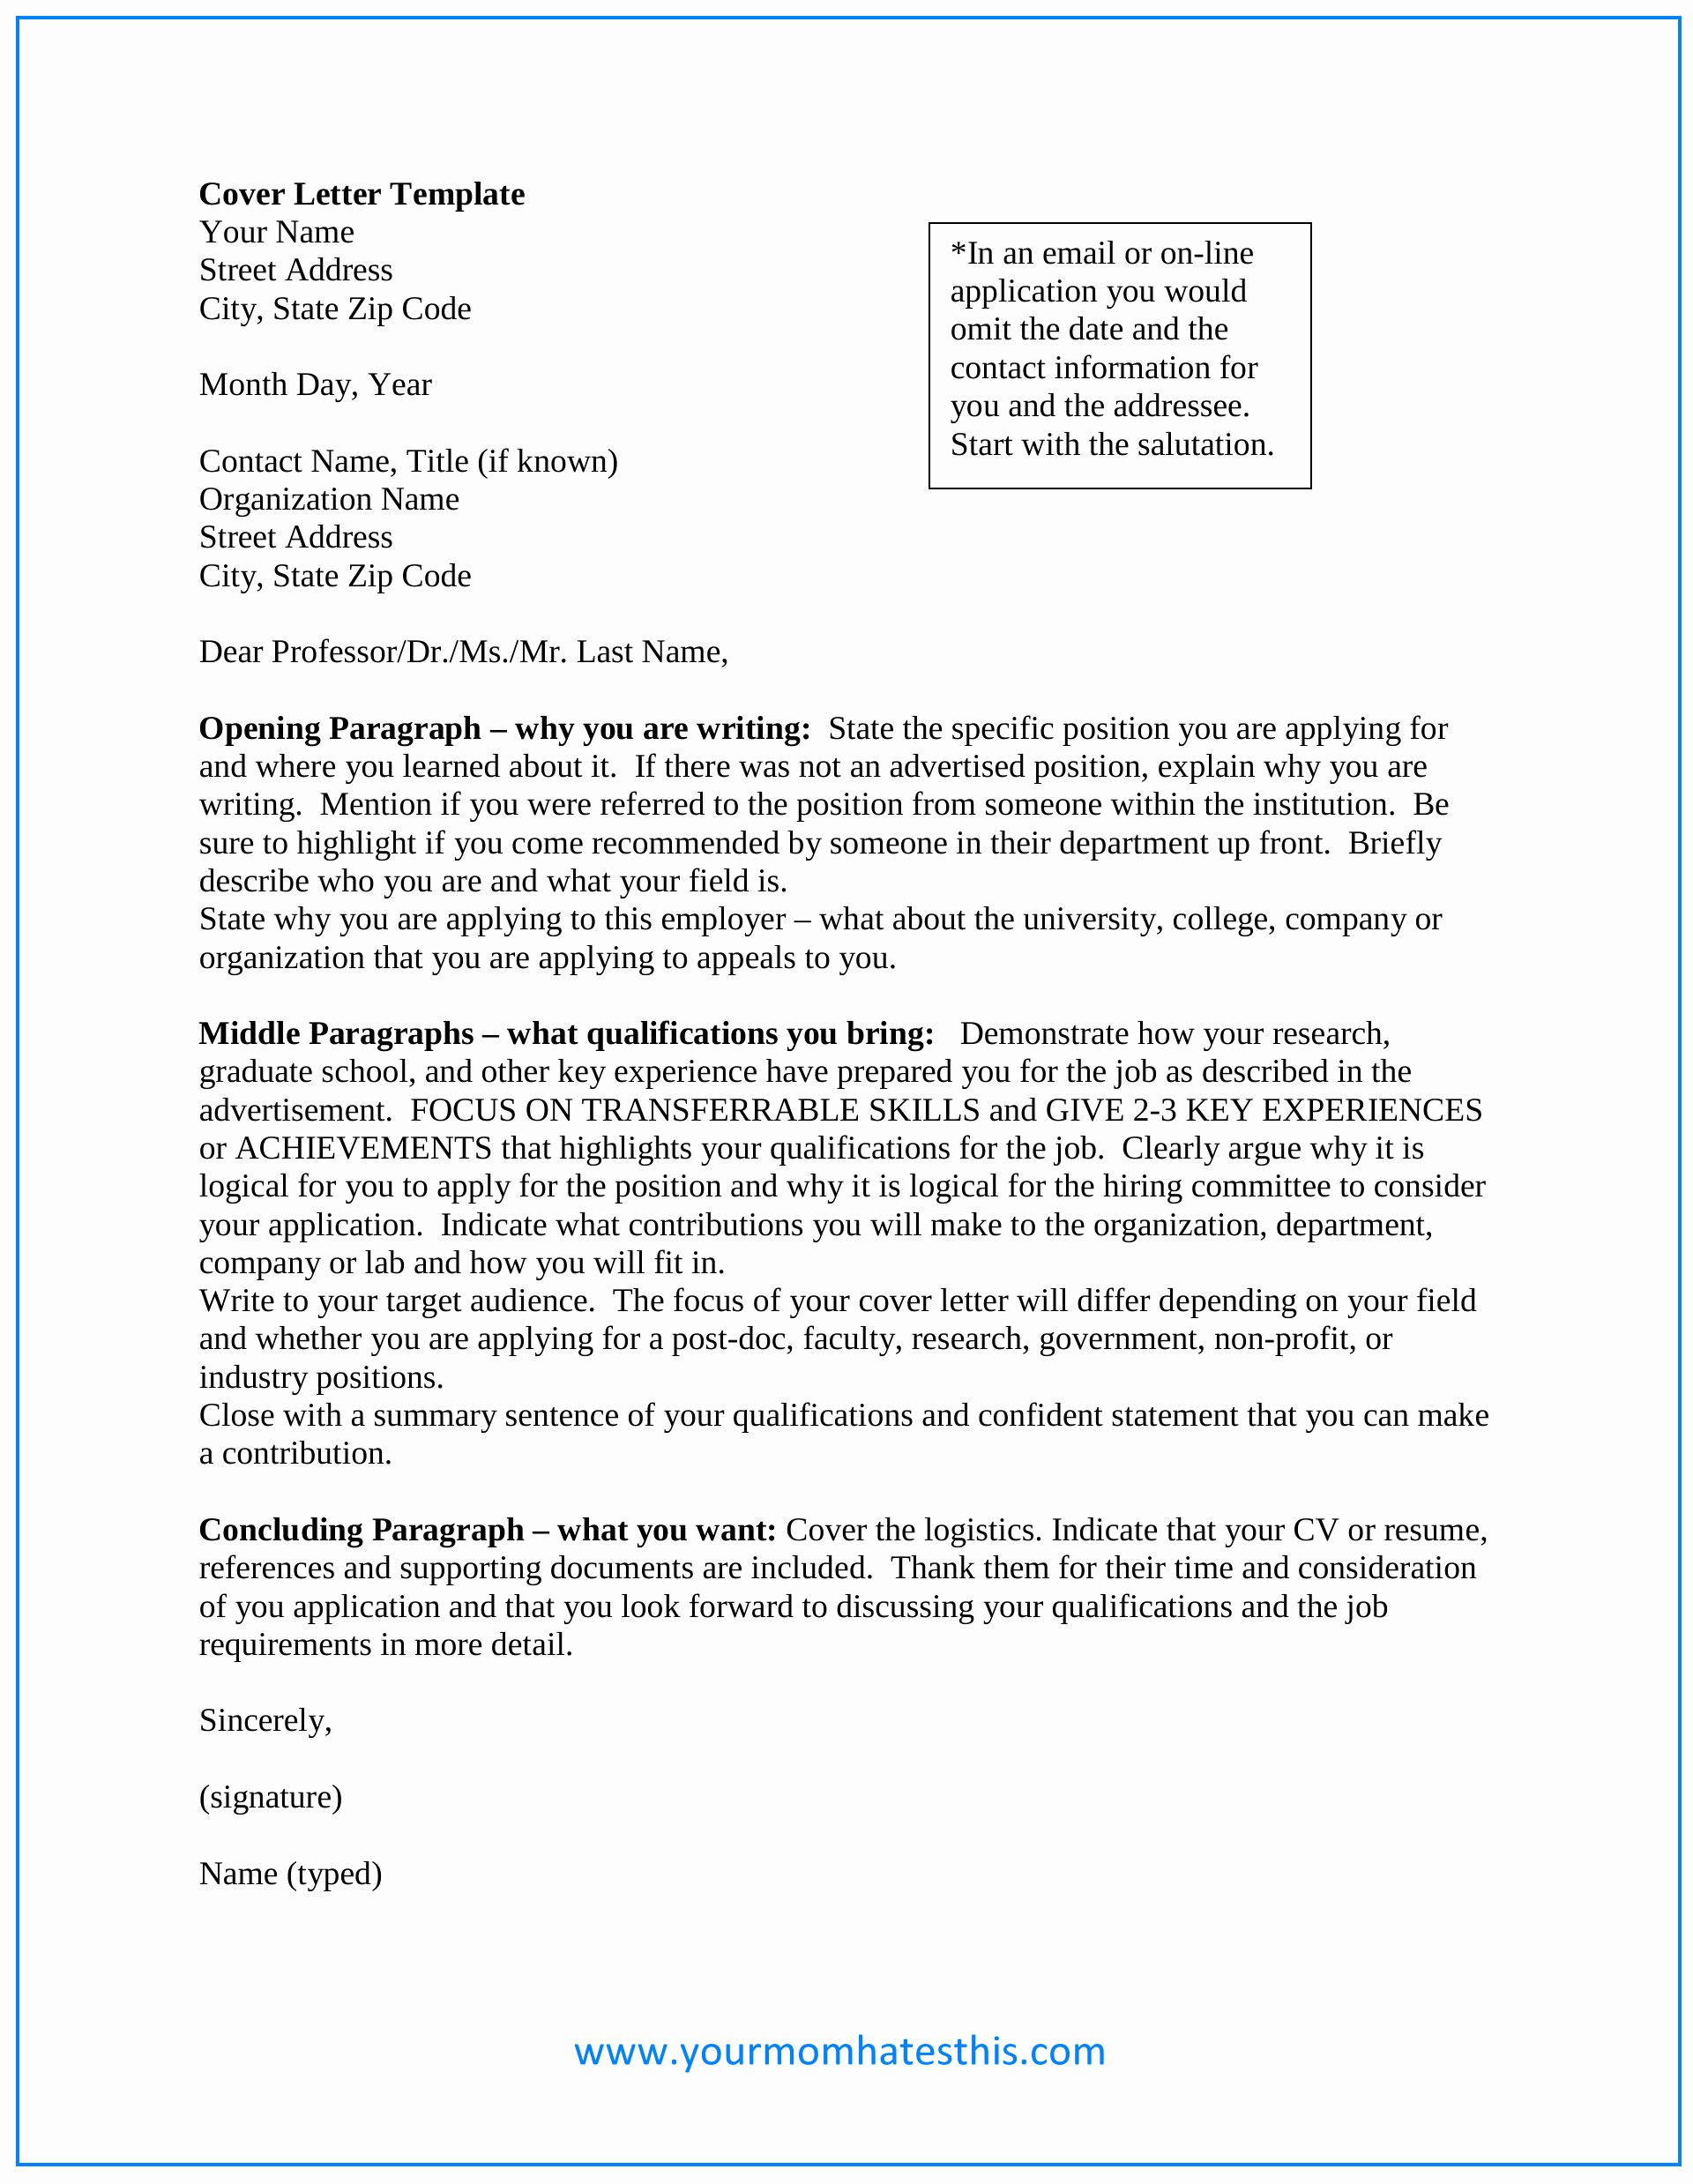 Cover Letter with Photo Template Luxury Download Cover Letter Samples